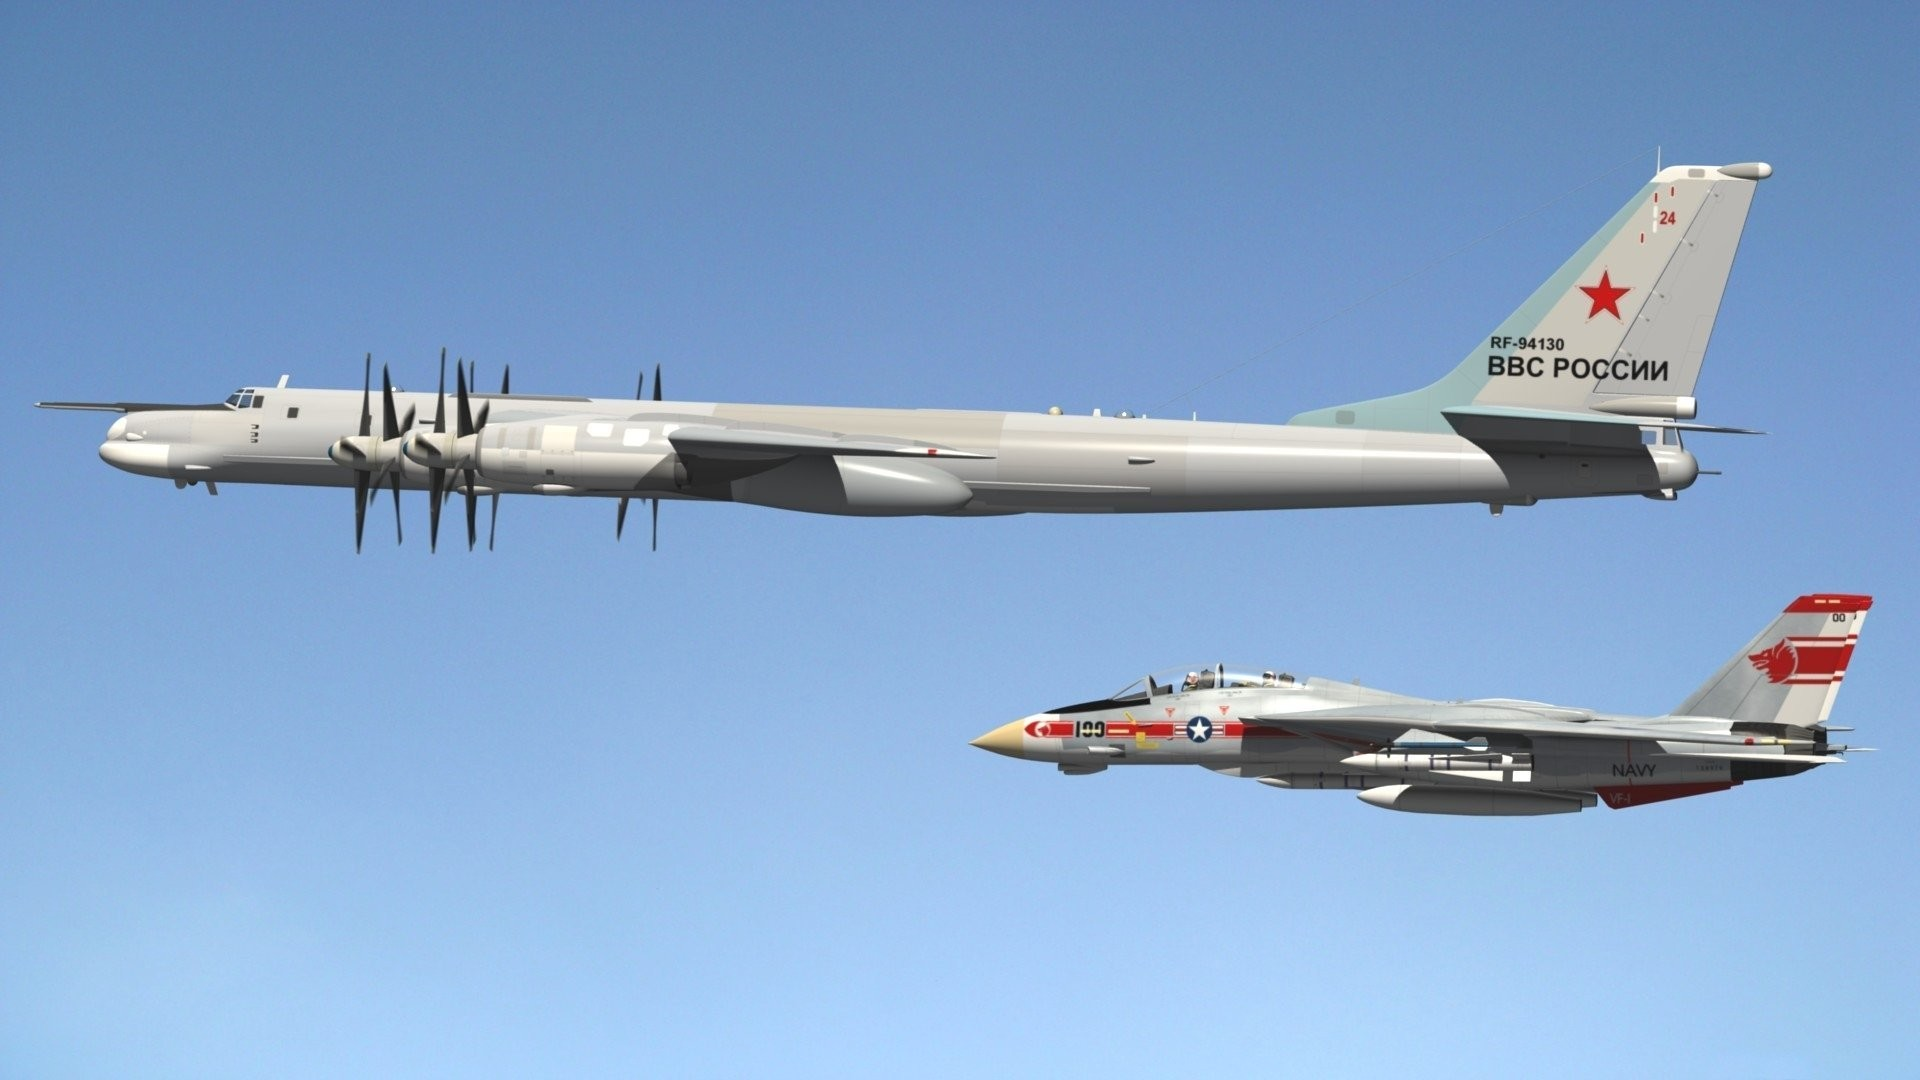 1920x1080 tu- 95 turboprop strategic bomber missile grumman f-14 tomcat. Share the  image